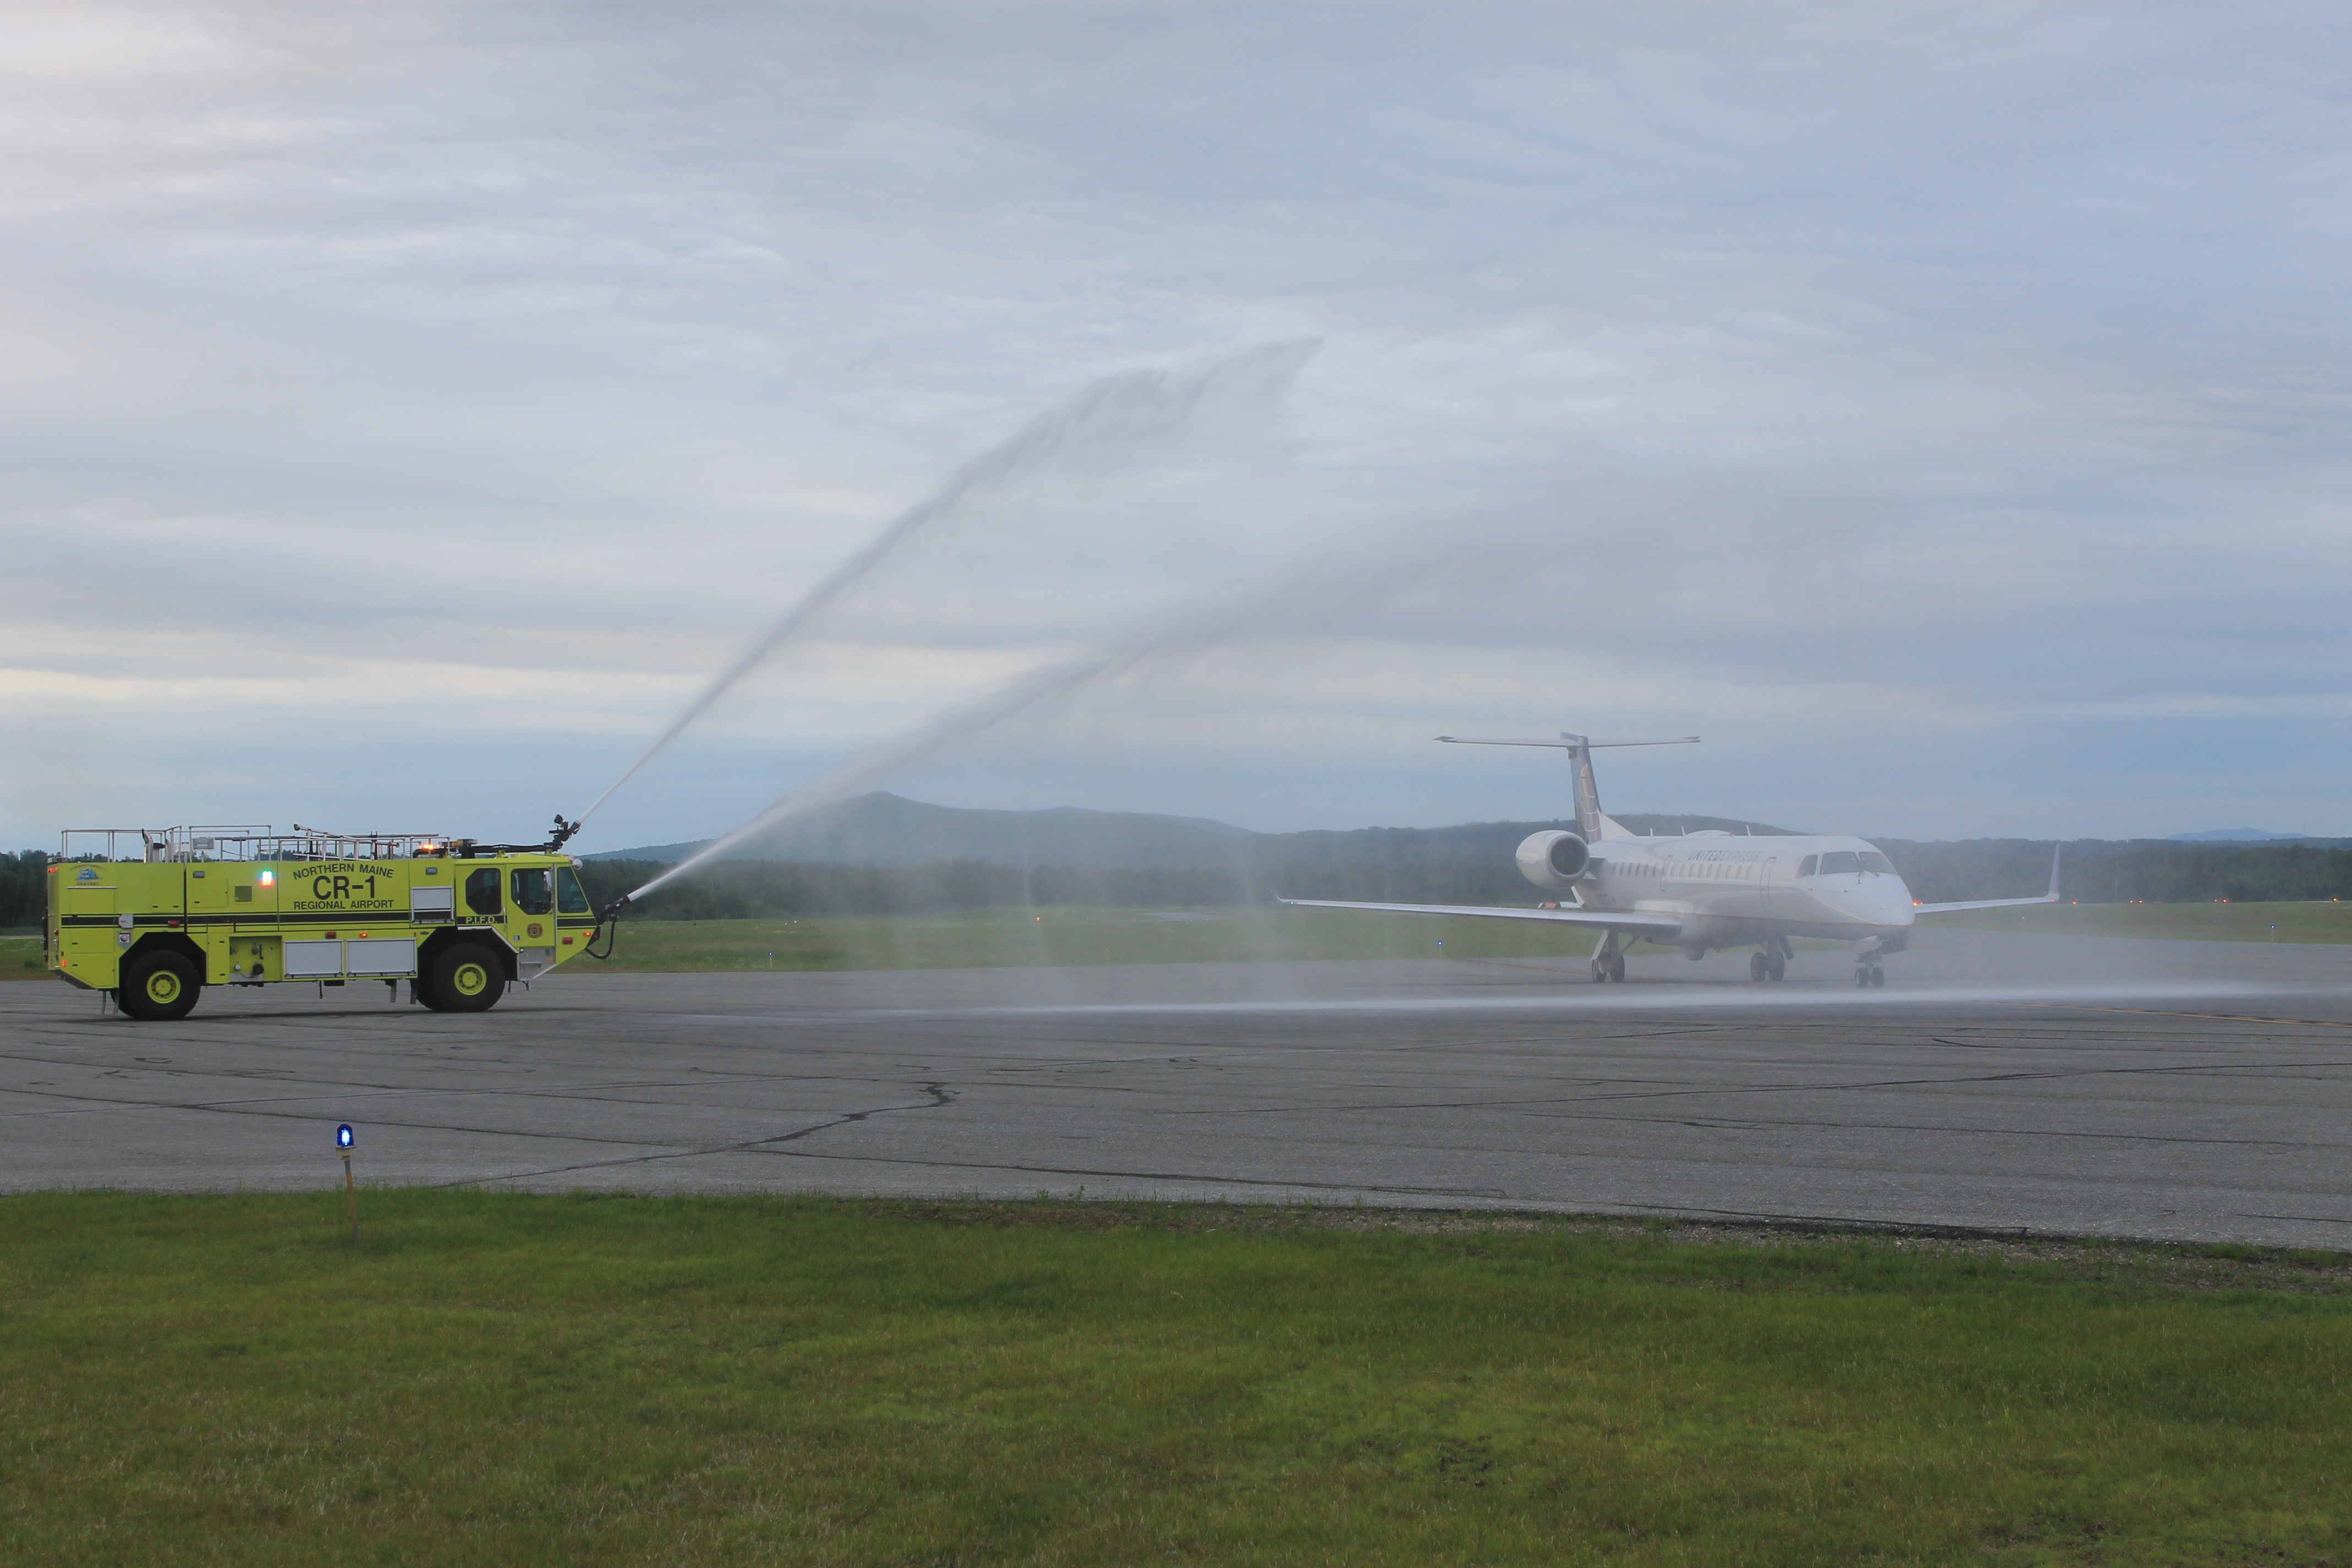 Presque Isle Celebrates New Airline S First Take Off Fiddlehead Focus